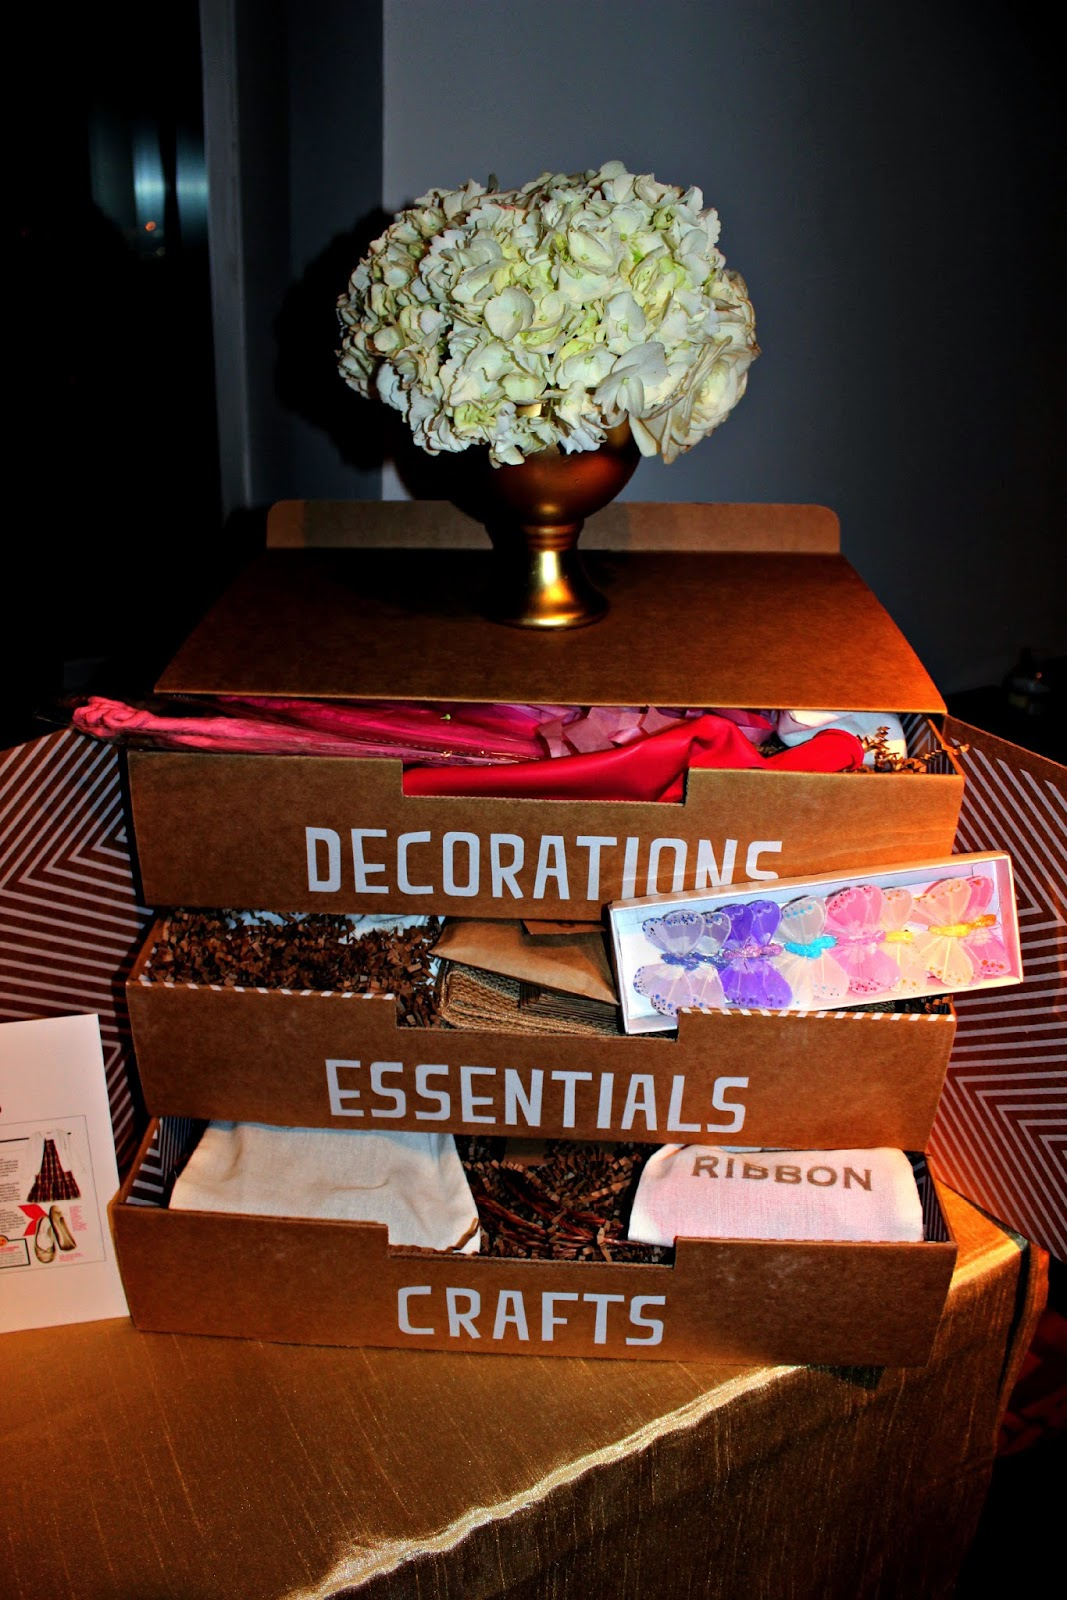 Celebrate the Season InStyle Decorations Essentials Crafts #CelebrateInStyle